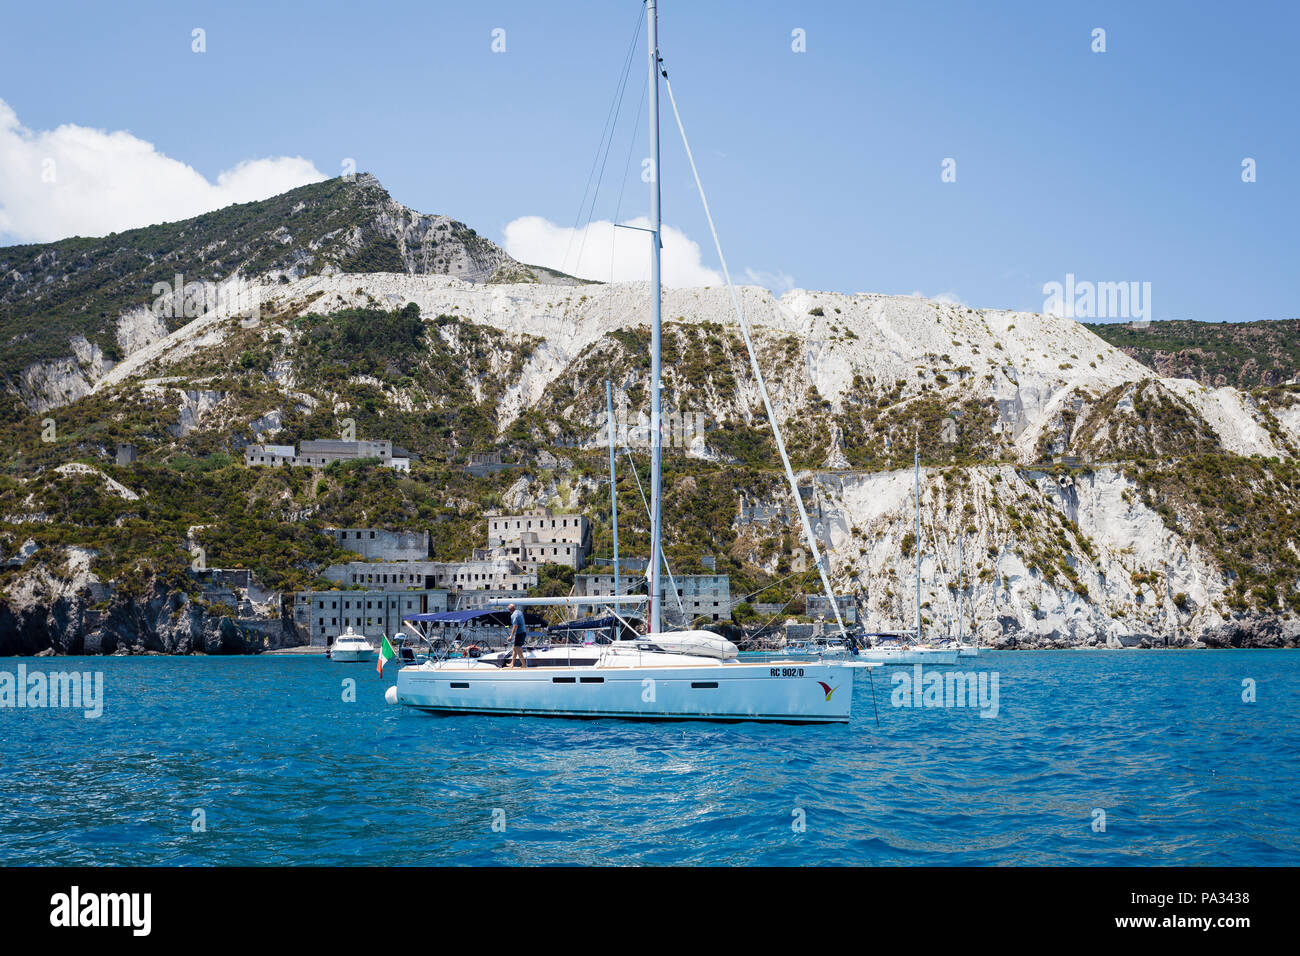 Boats anchored in front of the pumice quarries (cave di pomice) on the island of Lipari, Aeolian Islands, Sicily. - Stock Image